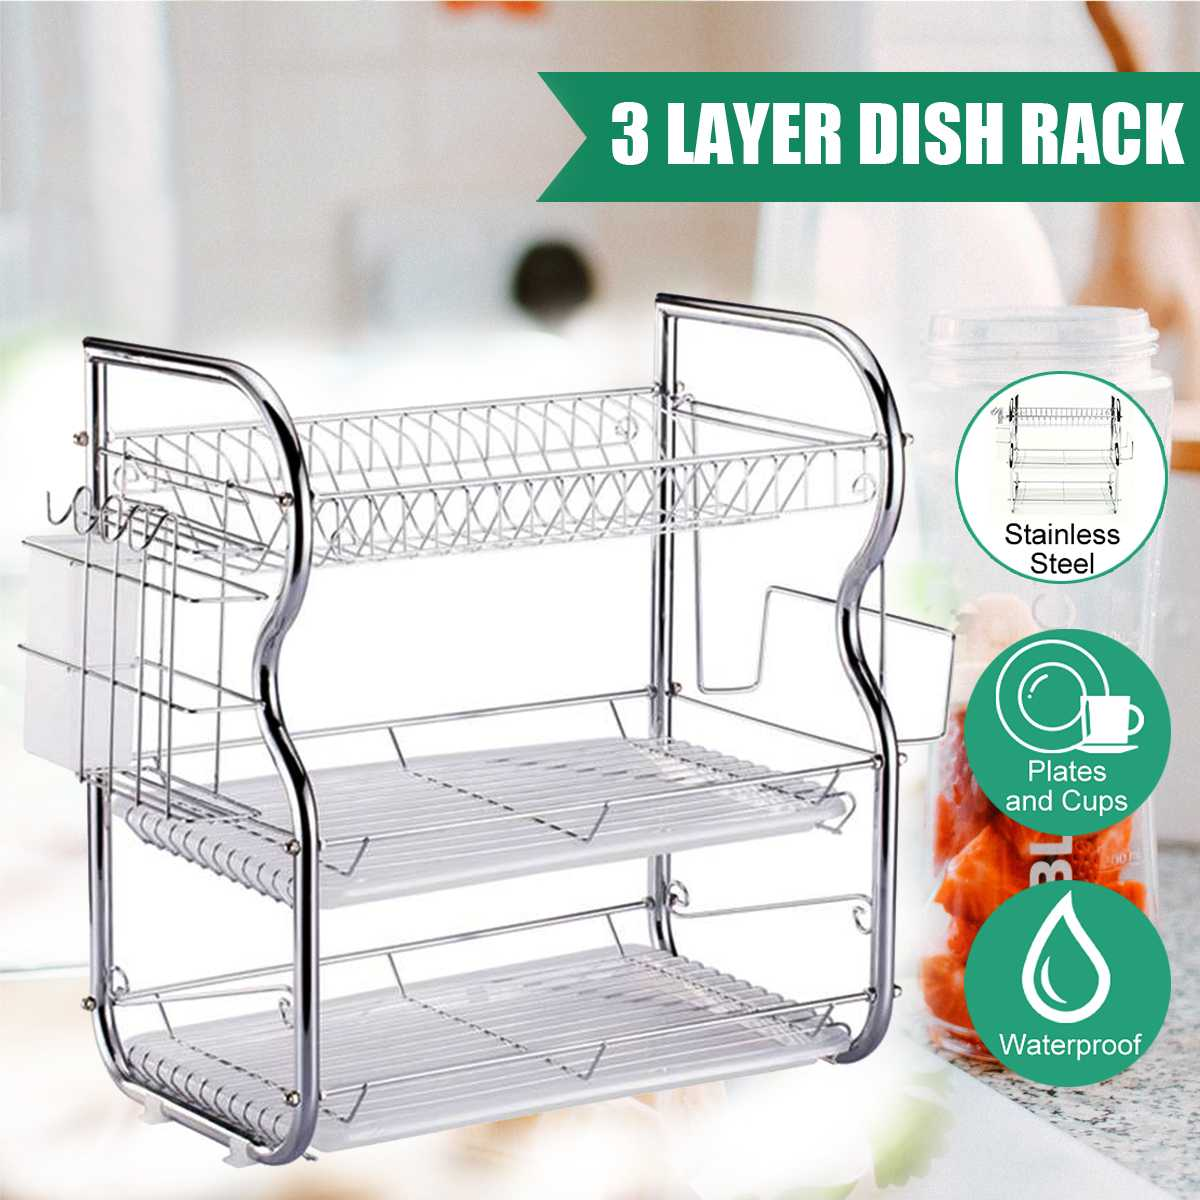 2/3 Tiers Multifunction 2 Tier Dish Drying Rack Holder Basket Stainless Steel Home Washing Kitchen Sink Dish Drainer Drying Rack|Racks & Holders| |  - title=